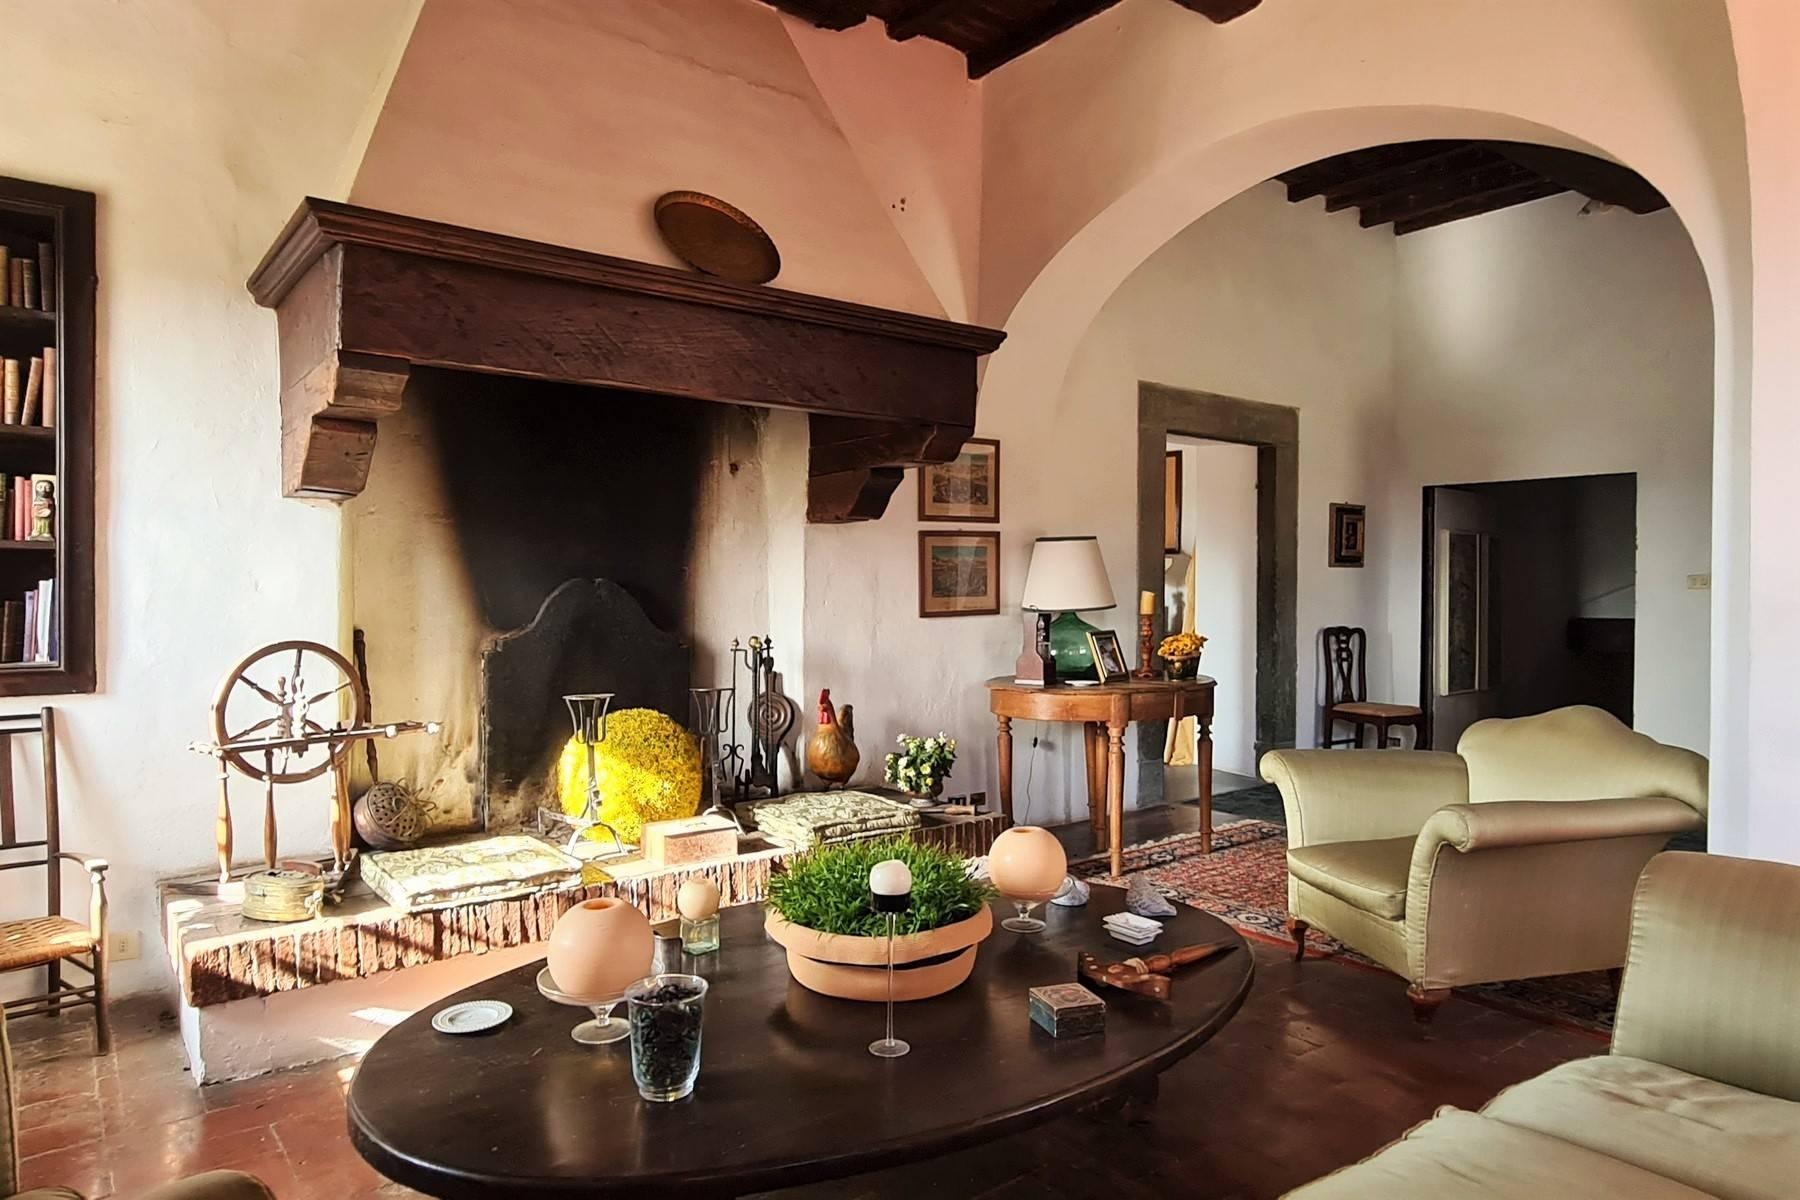 Enchanting historical villa in the heart of Chianti - 9